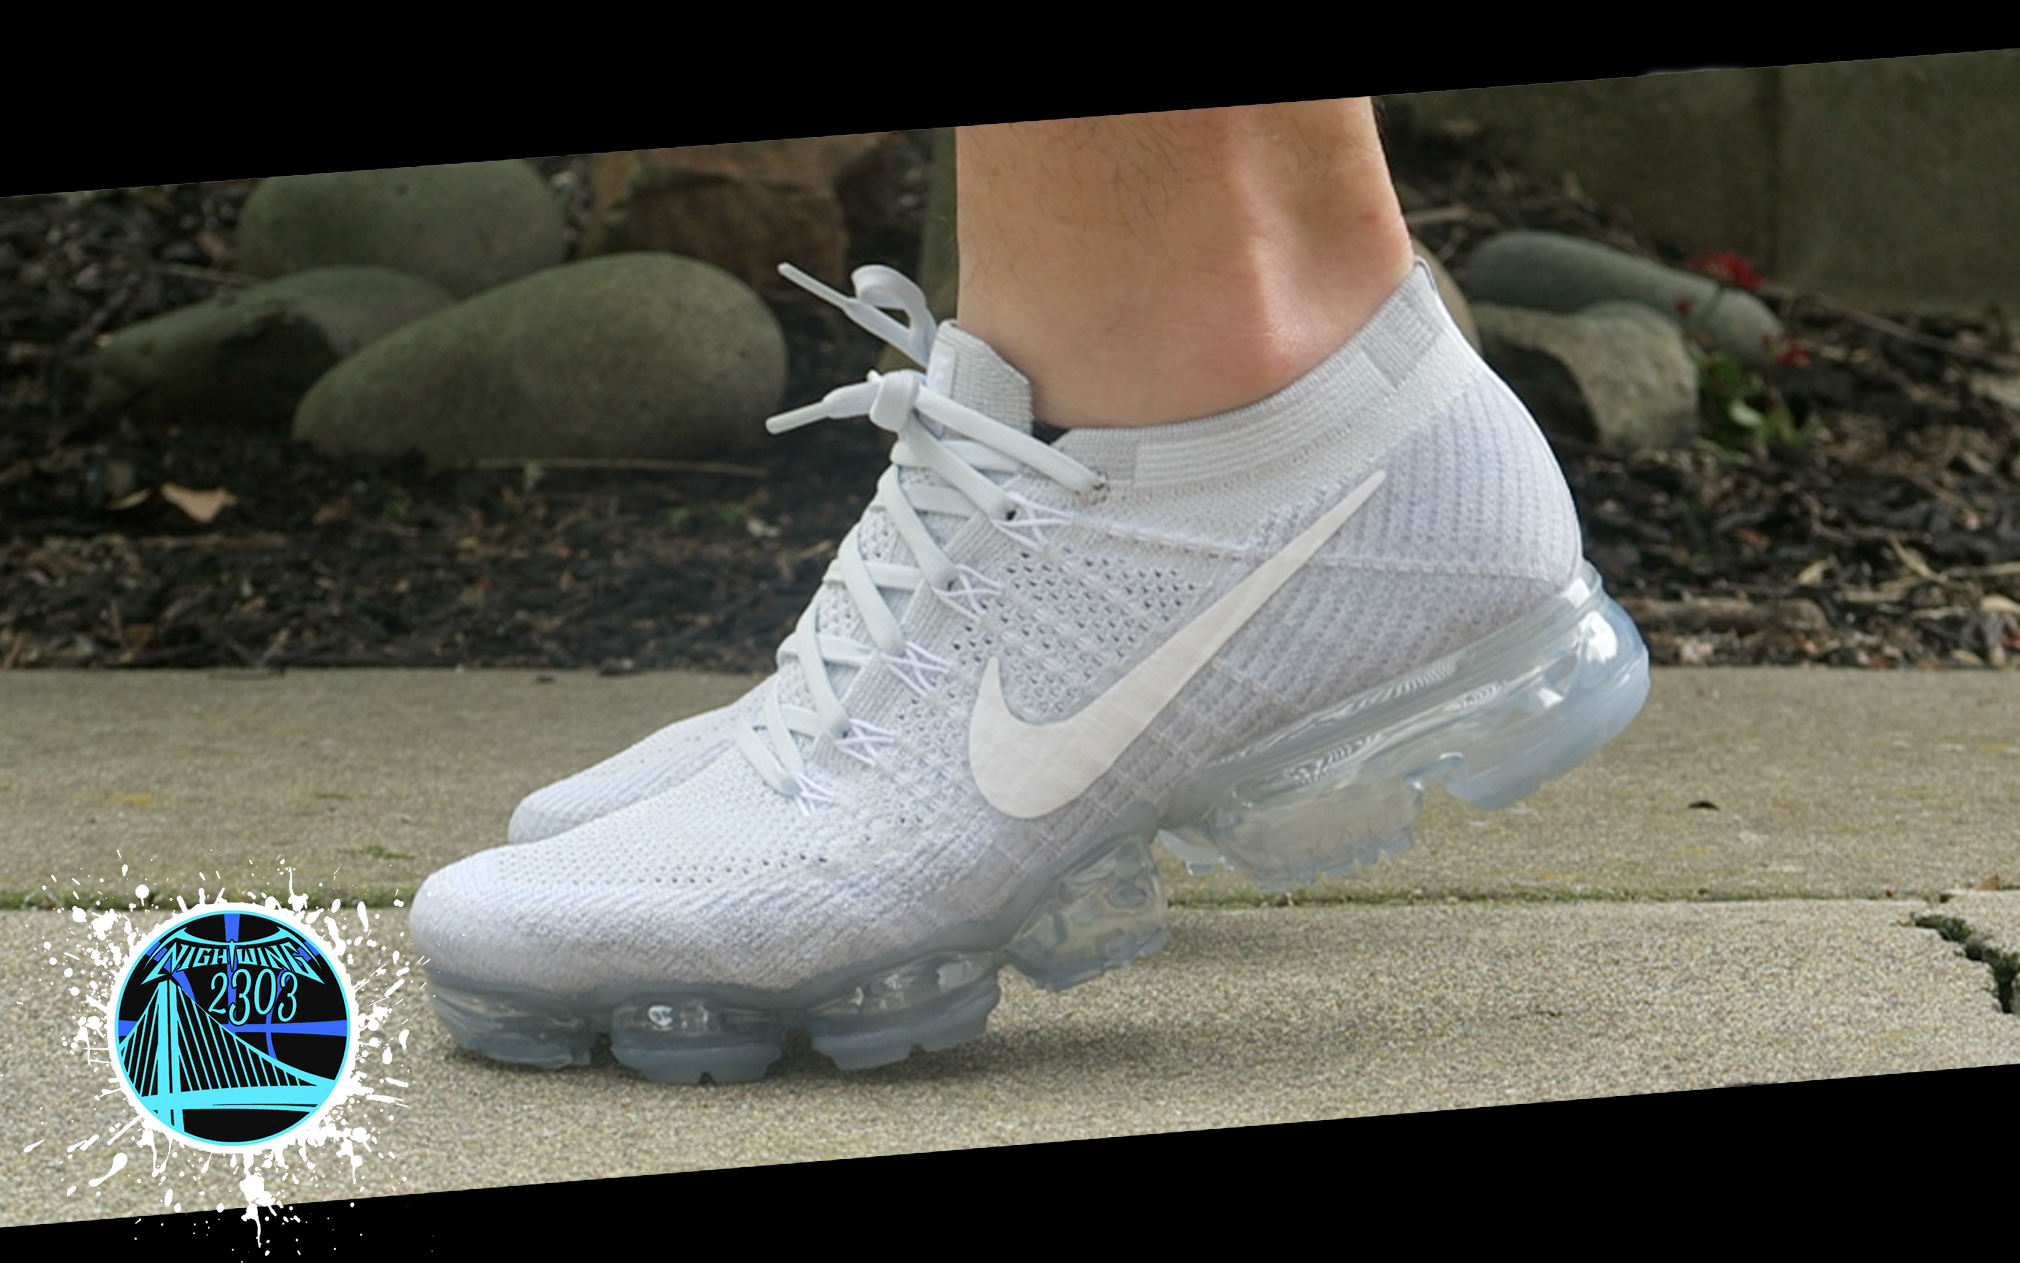 Cheap Nike air vapormax flyknit cdg comme des garcons us 7.5 uk 6.5